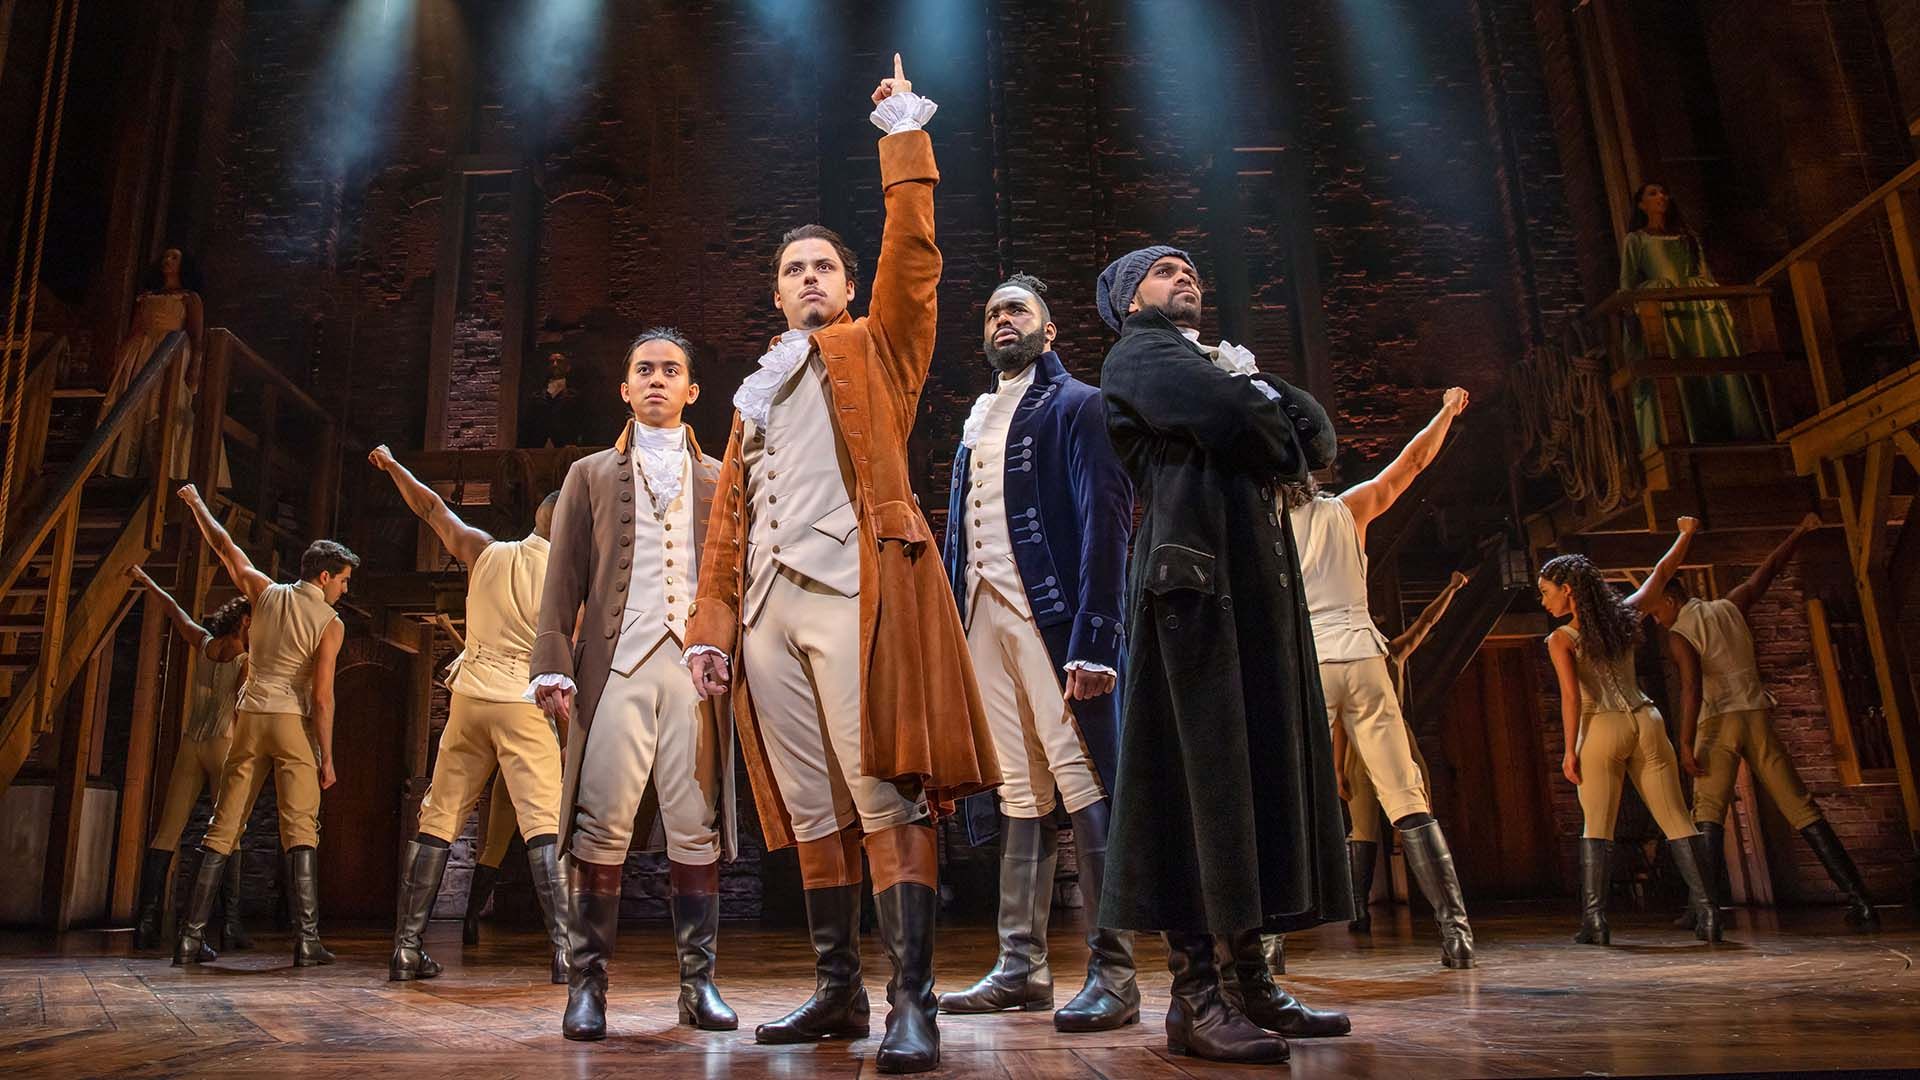 Tony Award-Winning Musical 'Hamilton' Is Finally Coming to Melbourne Next Year